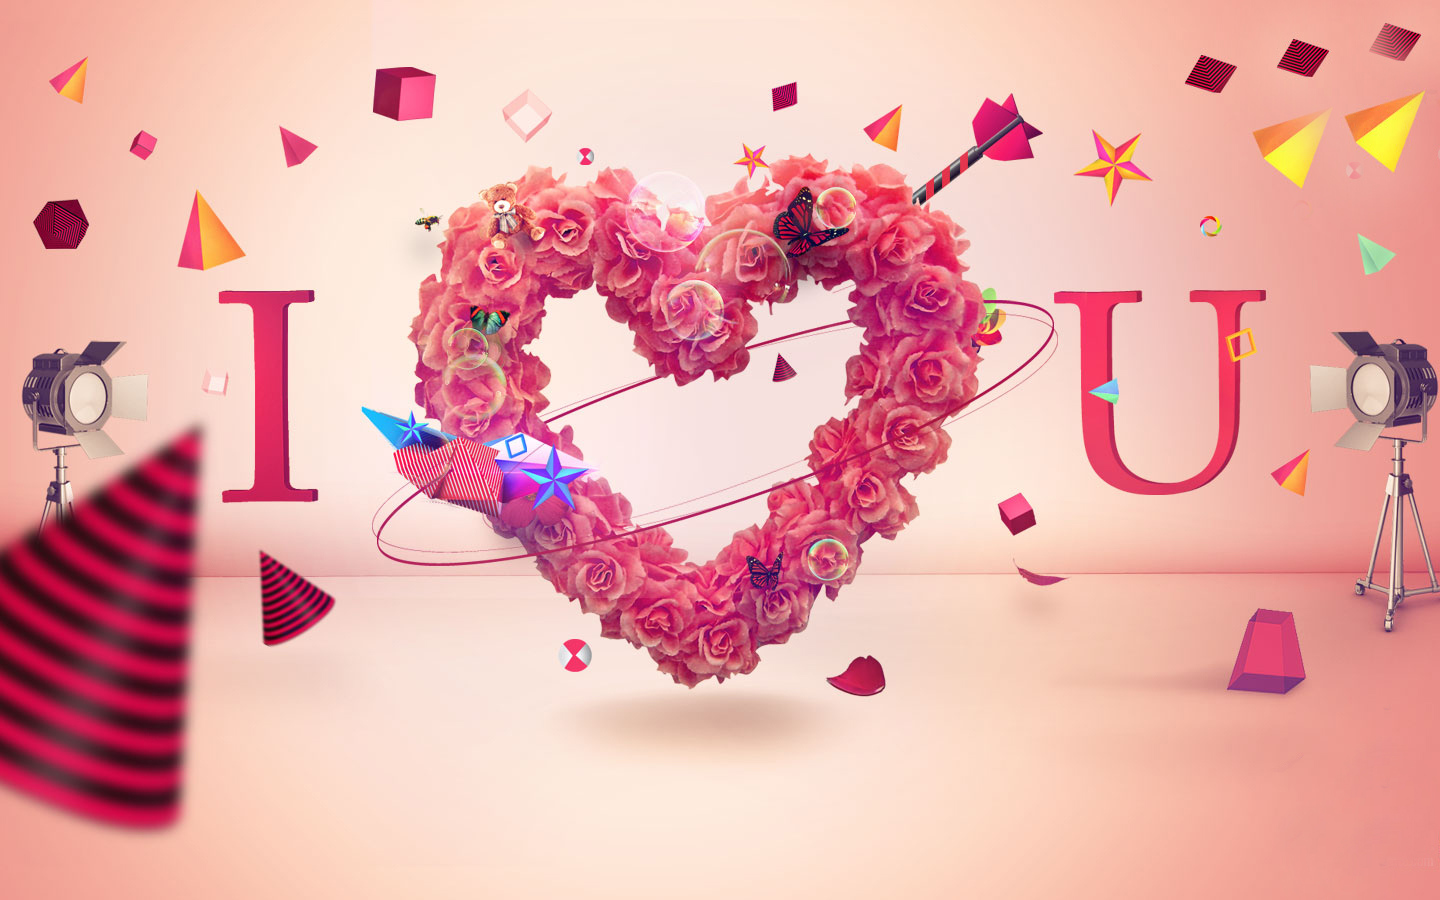 Free Download Beautiful Love Hd Wallpapers Download In 1080p